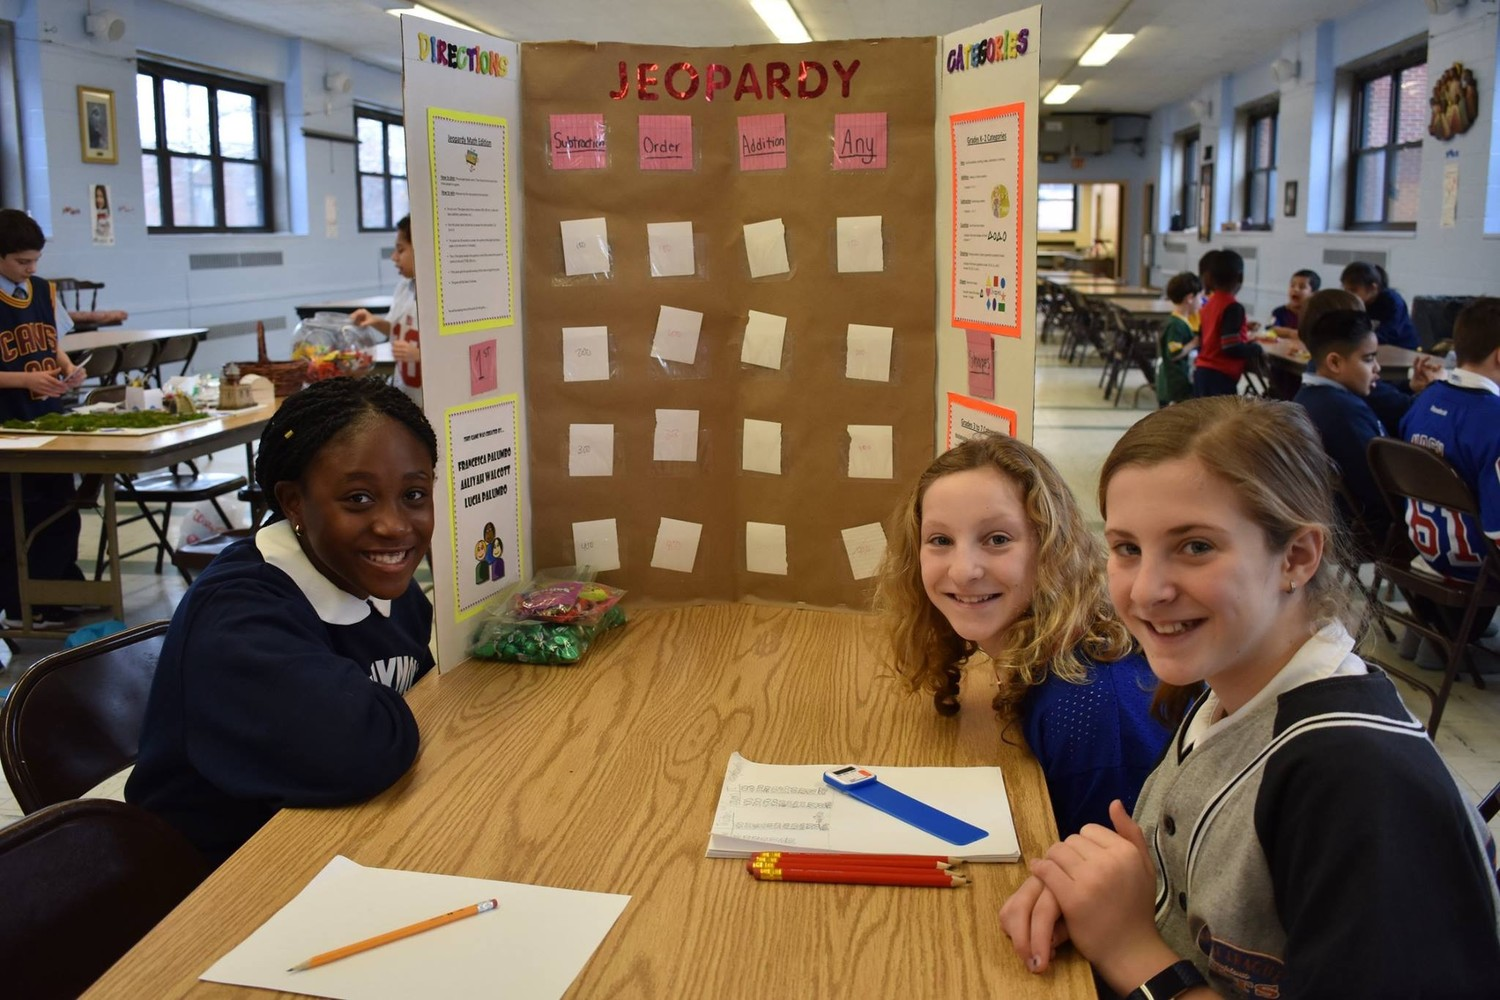 Sixth-graders at St. Raymond's made math-based board games for students in other grades to play during Catholic Schools Week.